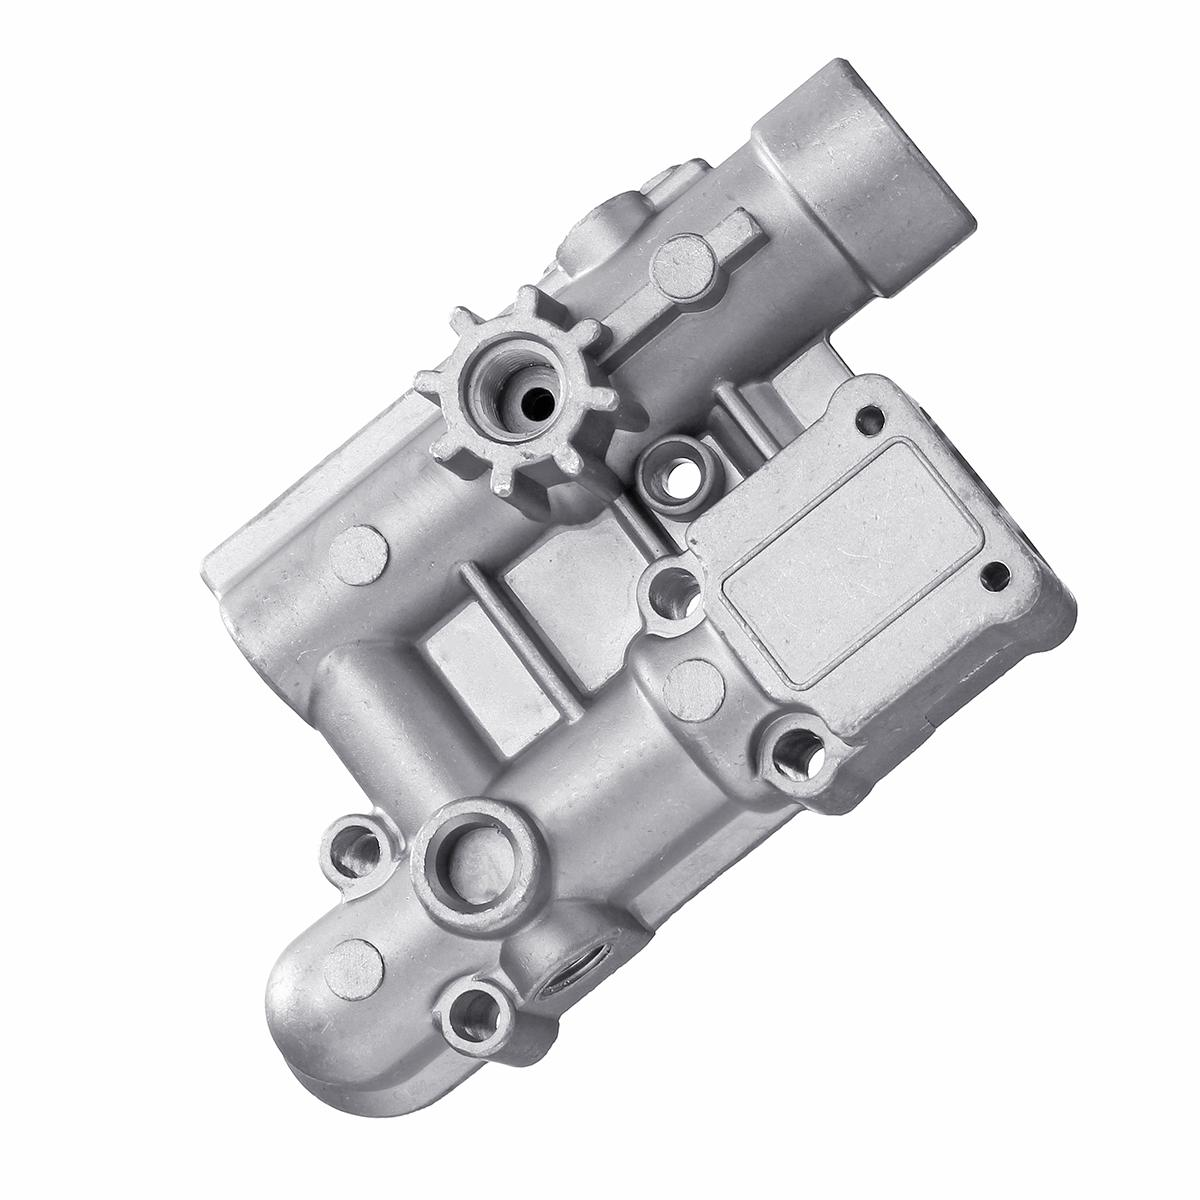 Car Pressure Washer Pump Unloader Manifold Fits for Craftsman Briggs Stratton Excell EXWGV1721 190627GS 16031 190574GS